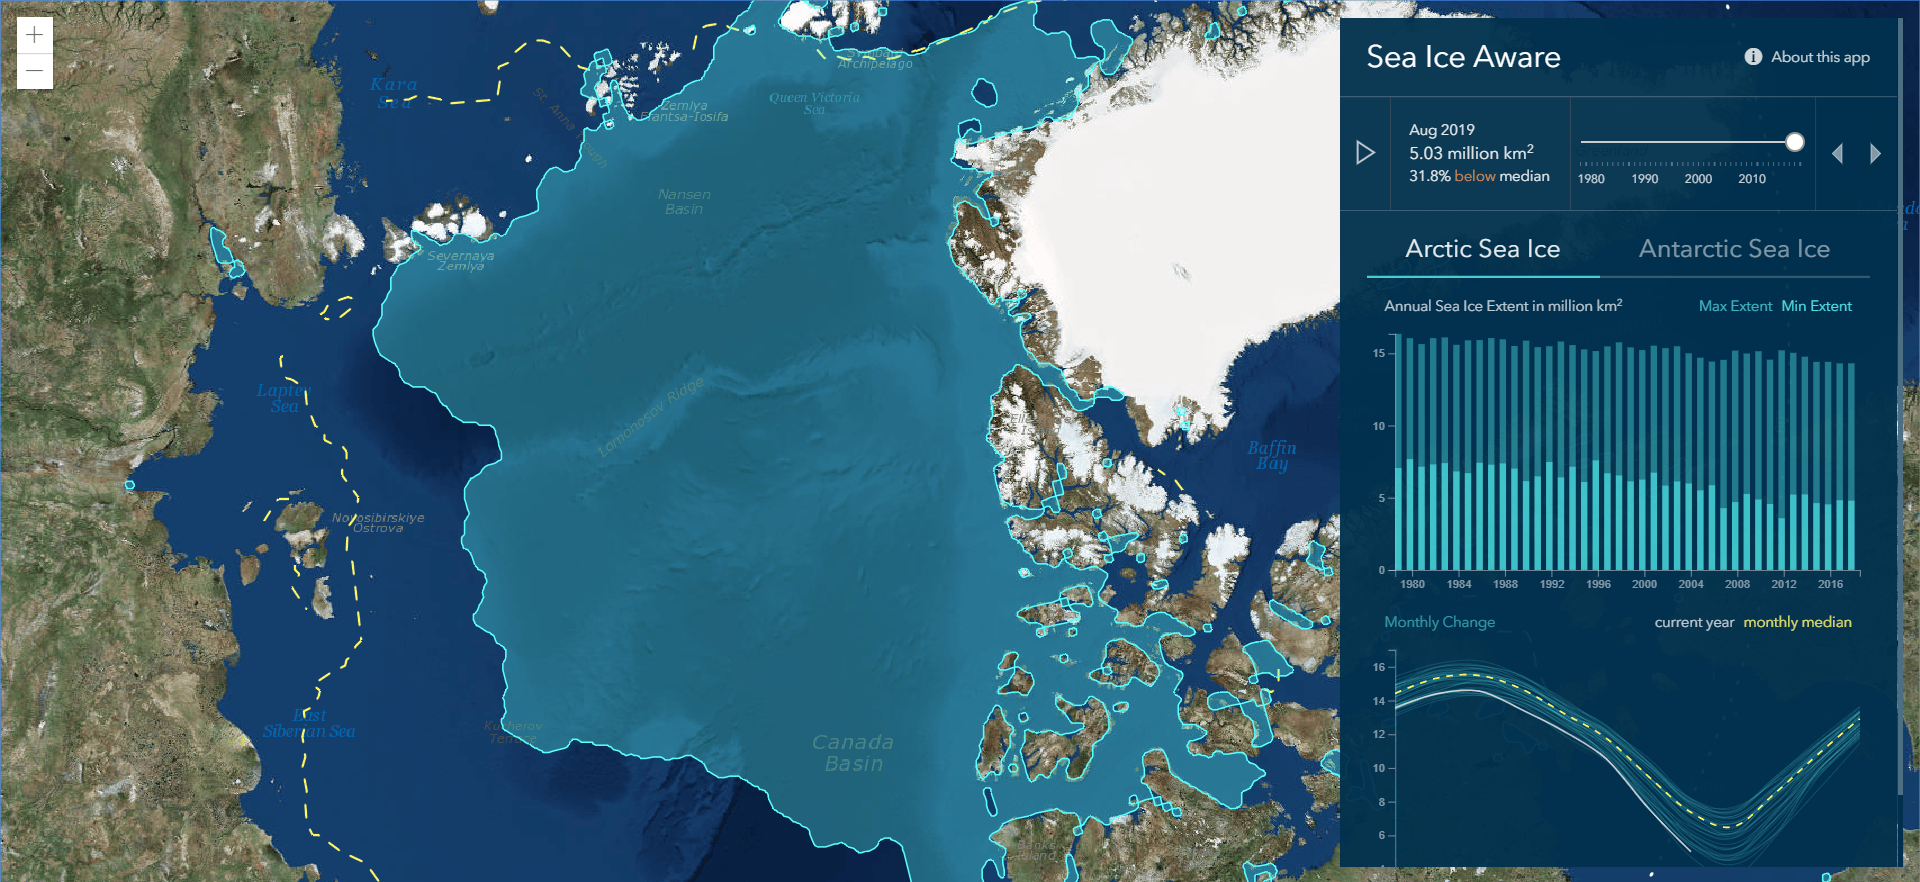 Sea Ice Aware app interface